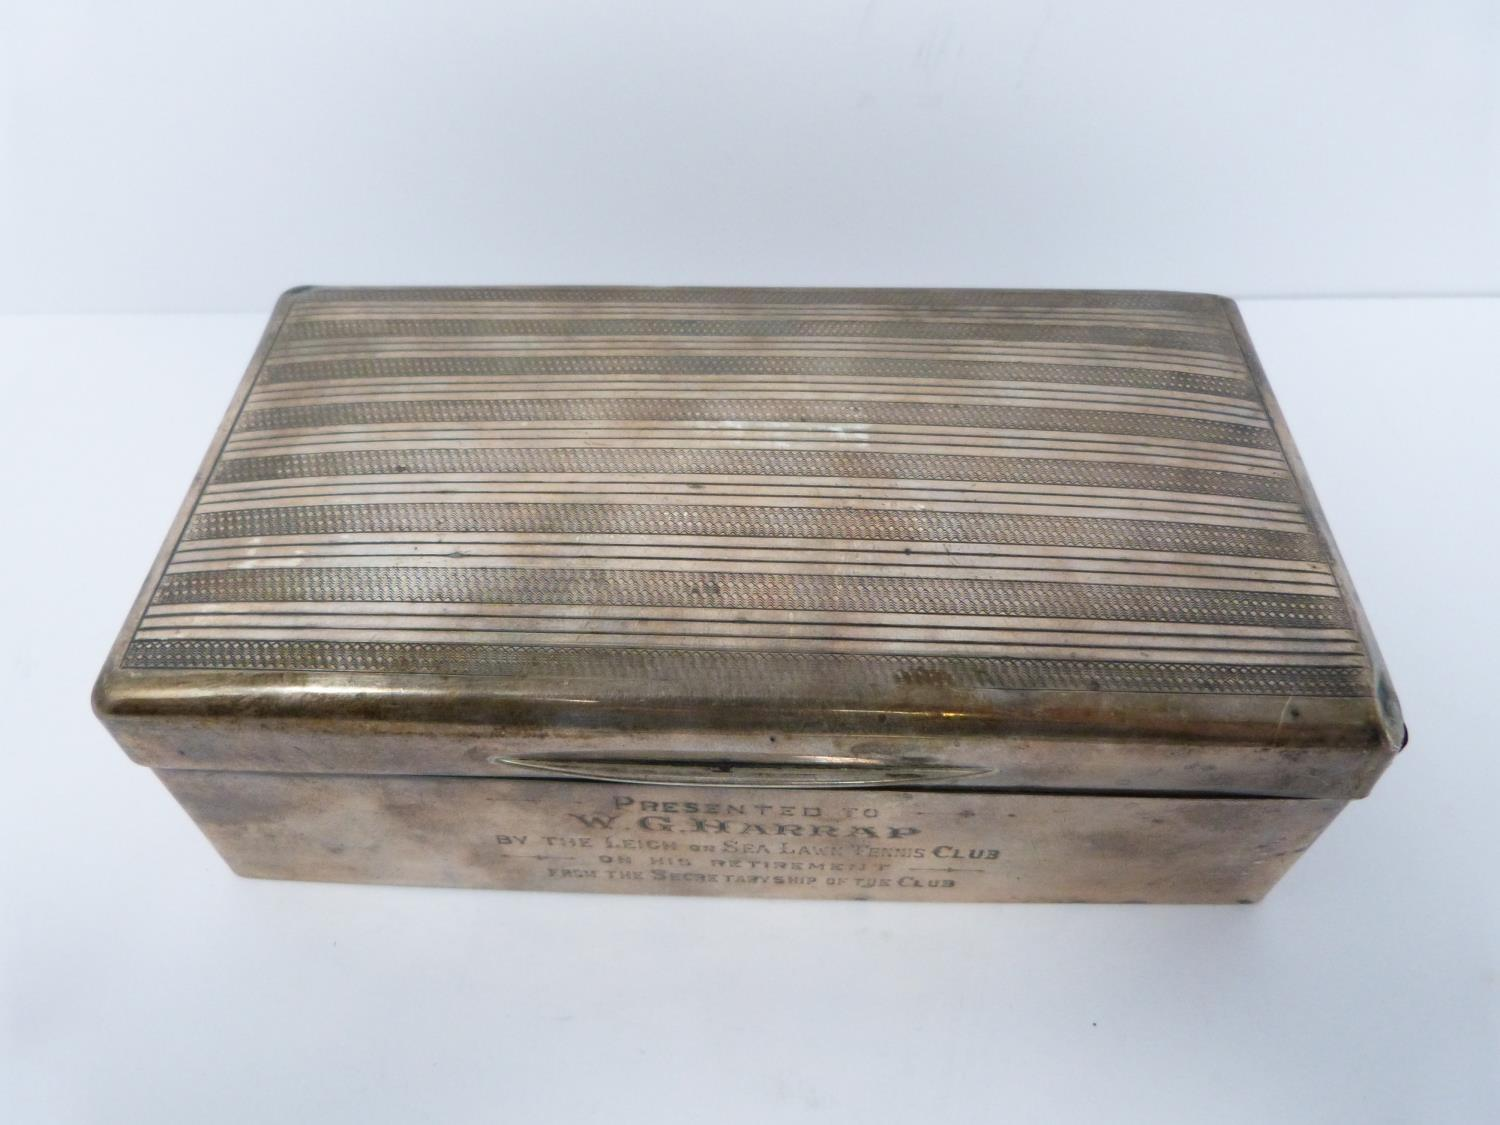 Two silver cigarette cases and a silver cigarette box, rectangular engine turned decoration case, - Image 3 of 14